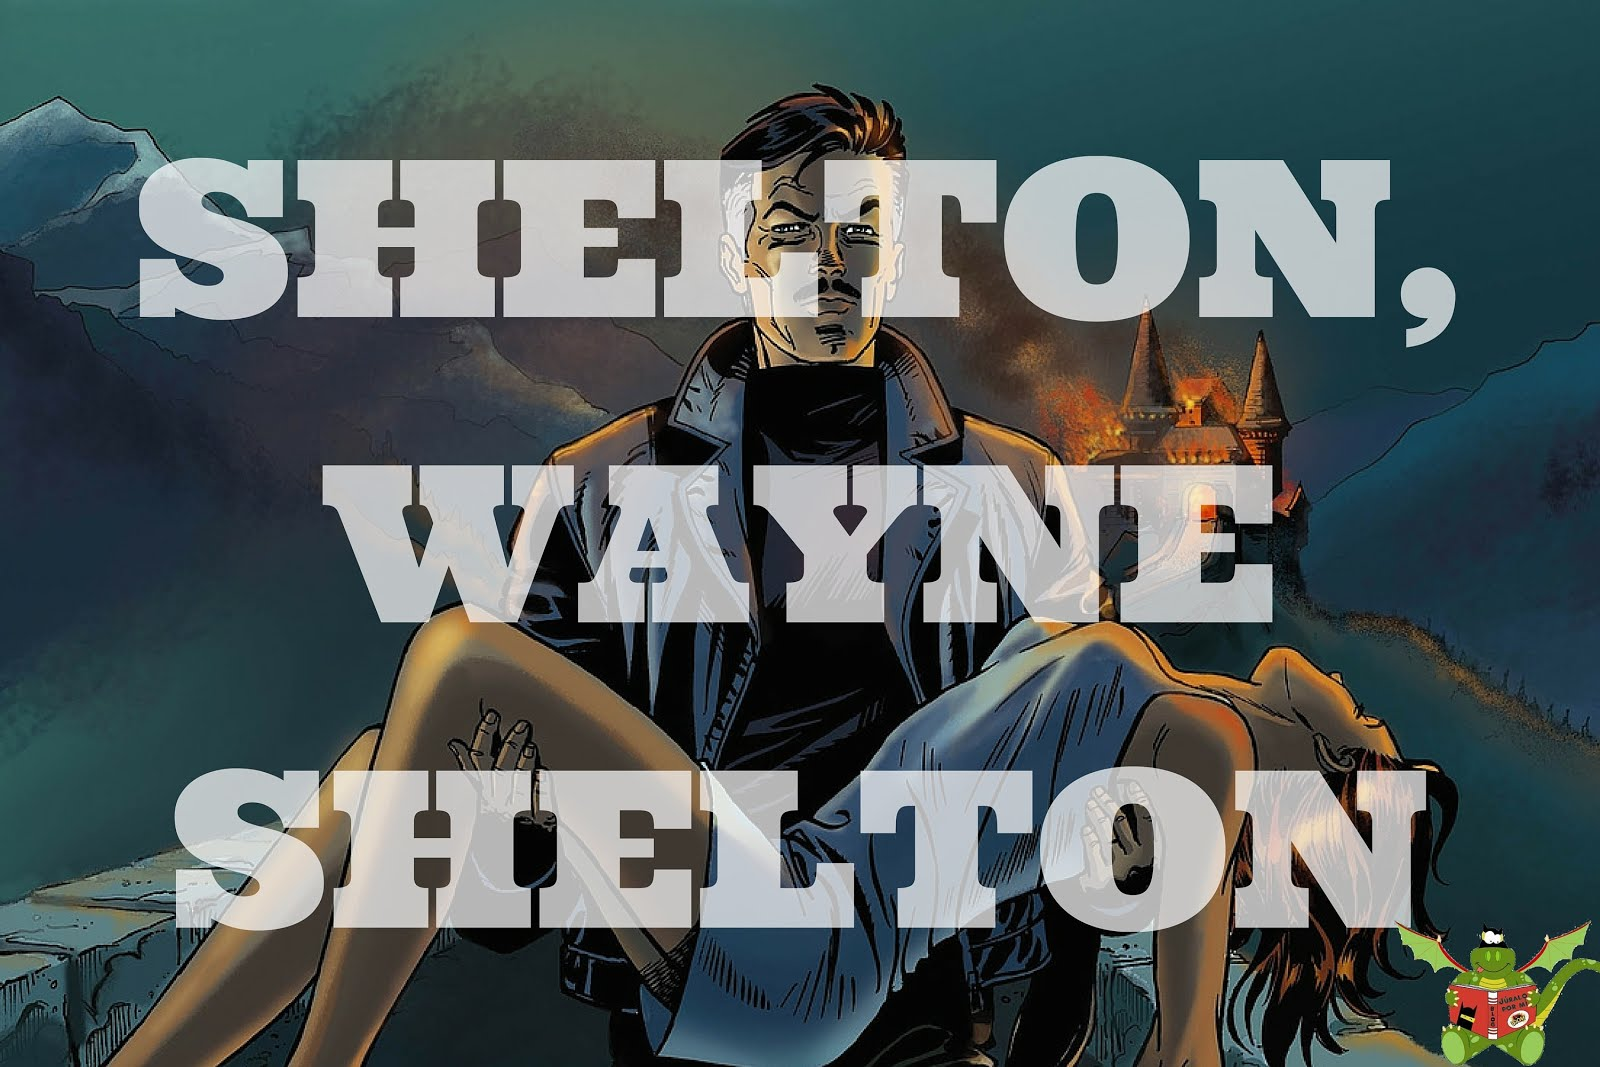 Hablamos de la saga Wayne Shelton en Youtube